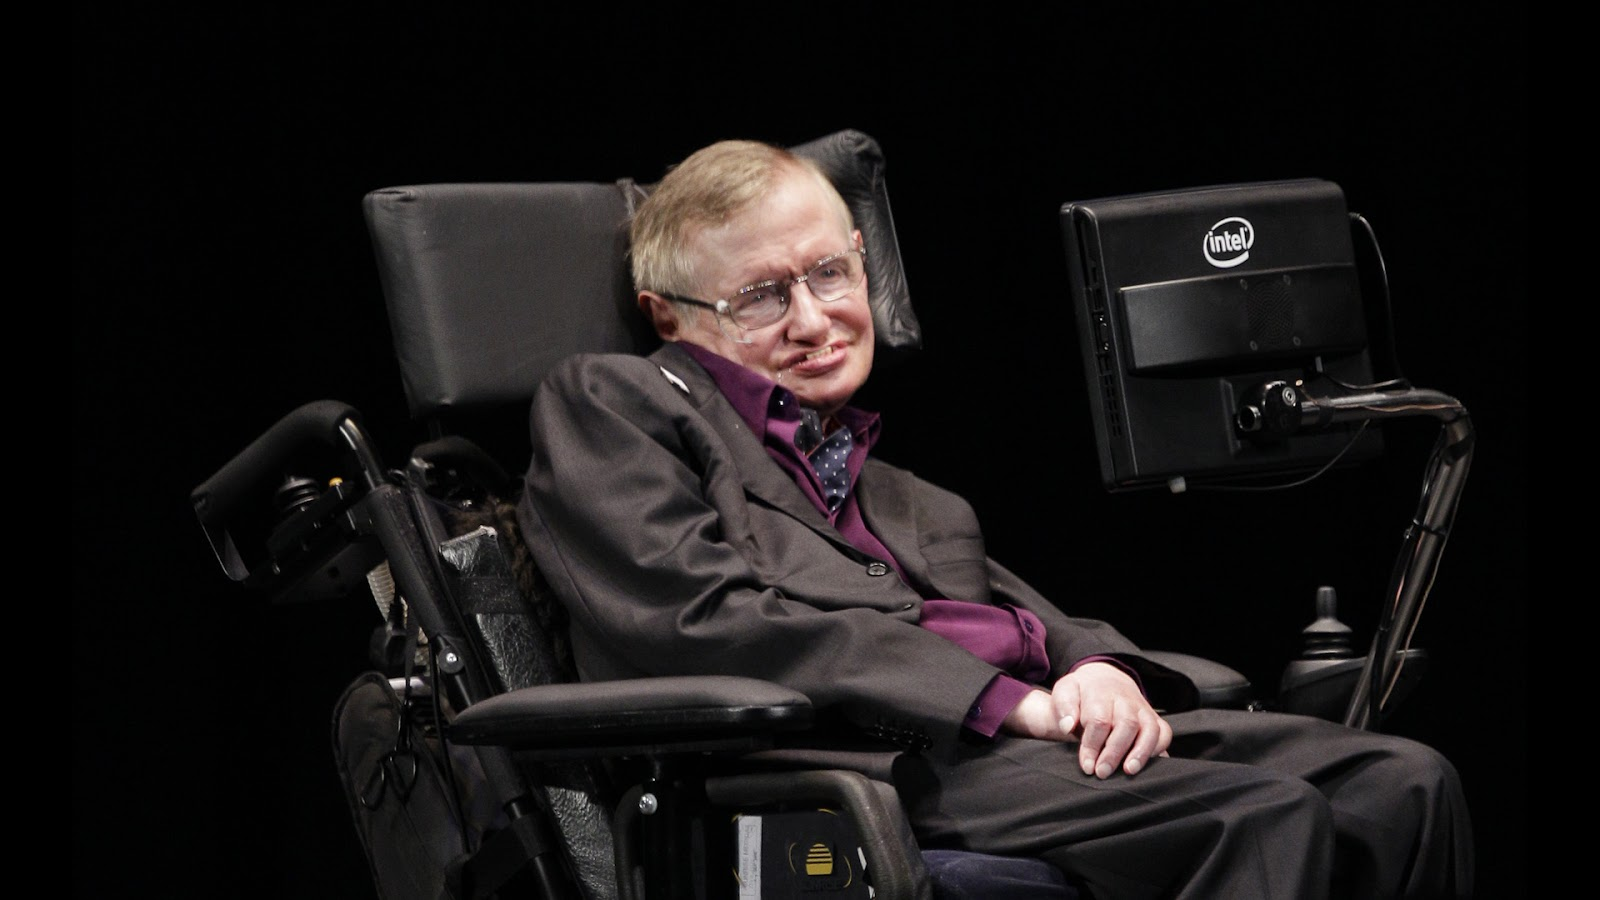 R.I.P: Stephen Hawking dies at the age 76 | Hot Streaks